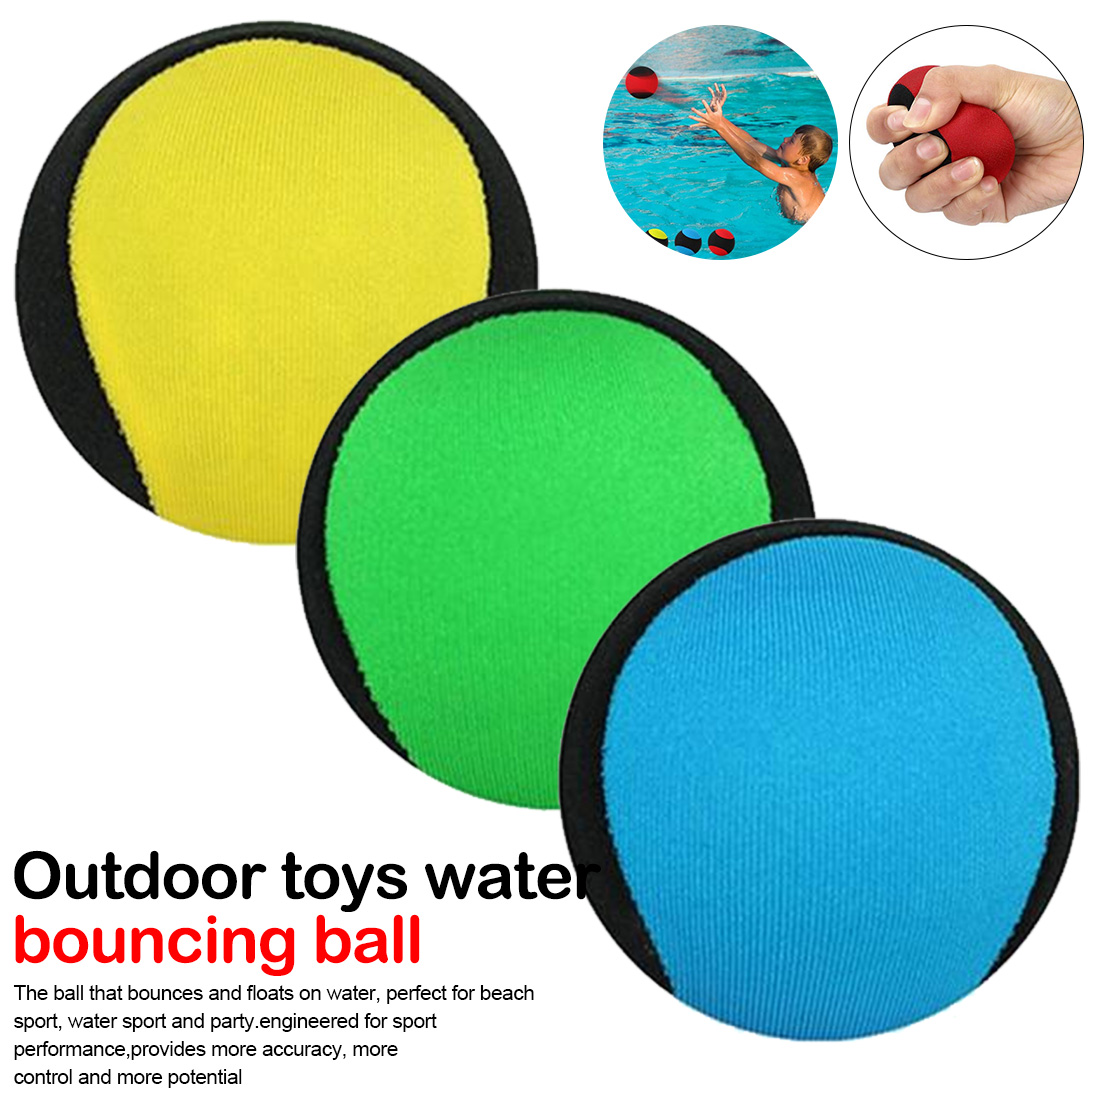 Bounce Ball Outdoor Toys Water Bouncing Ball Pool Play Beach Ball Skips On Water Game Sports Toy For Swimming Pool